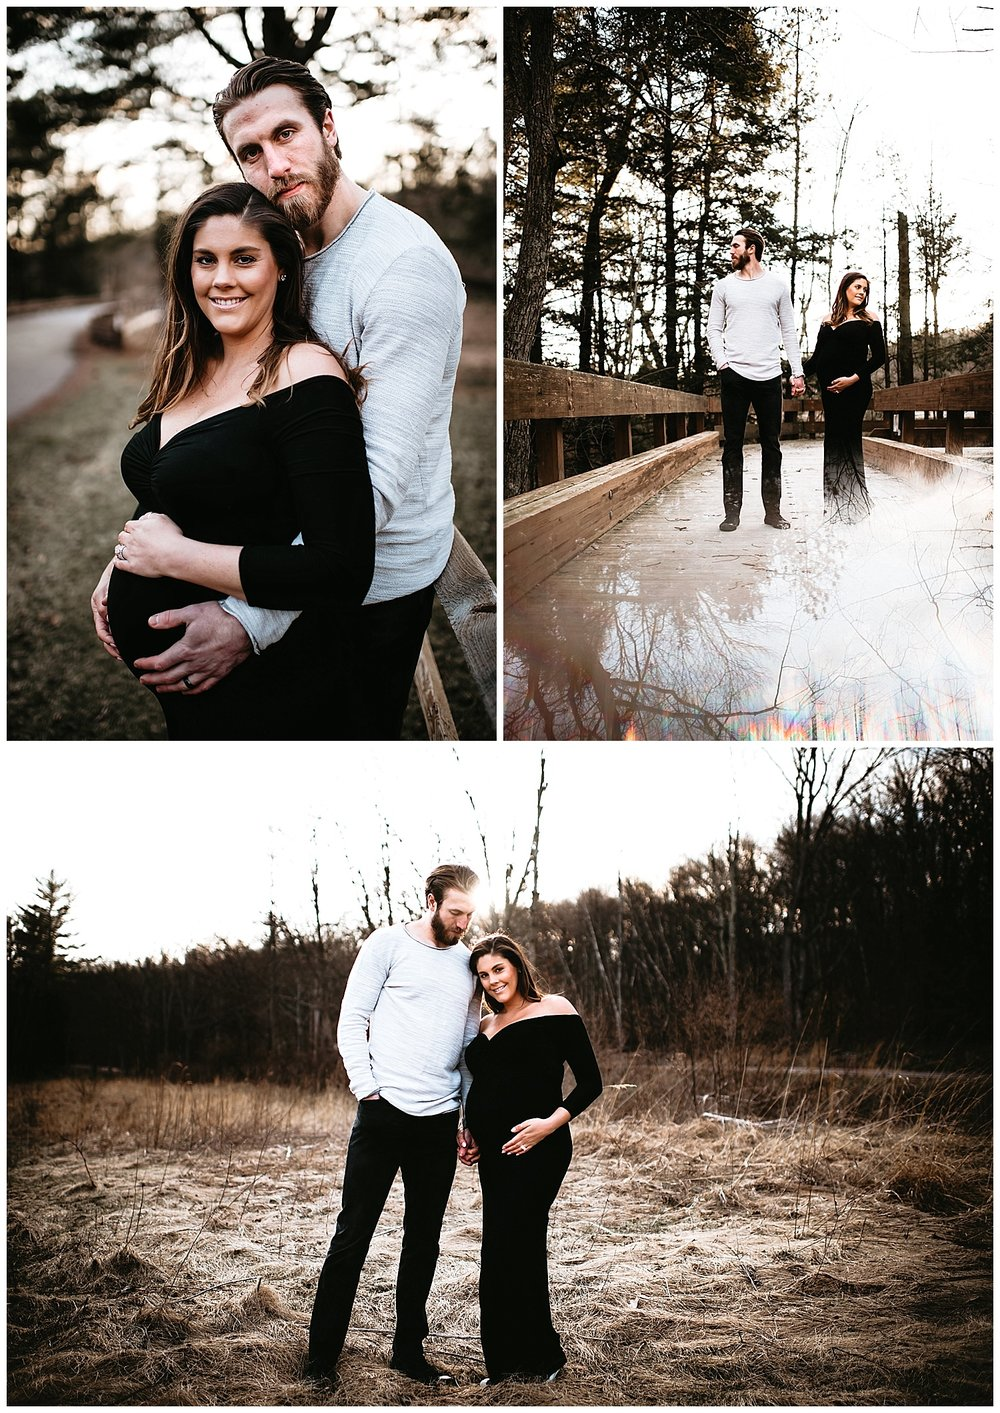 NEPA-Maternity-newborn-photographer-Wilkes-Bare-PA-Drums_0074.jpg